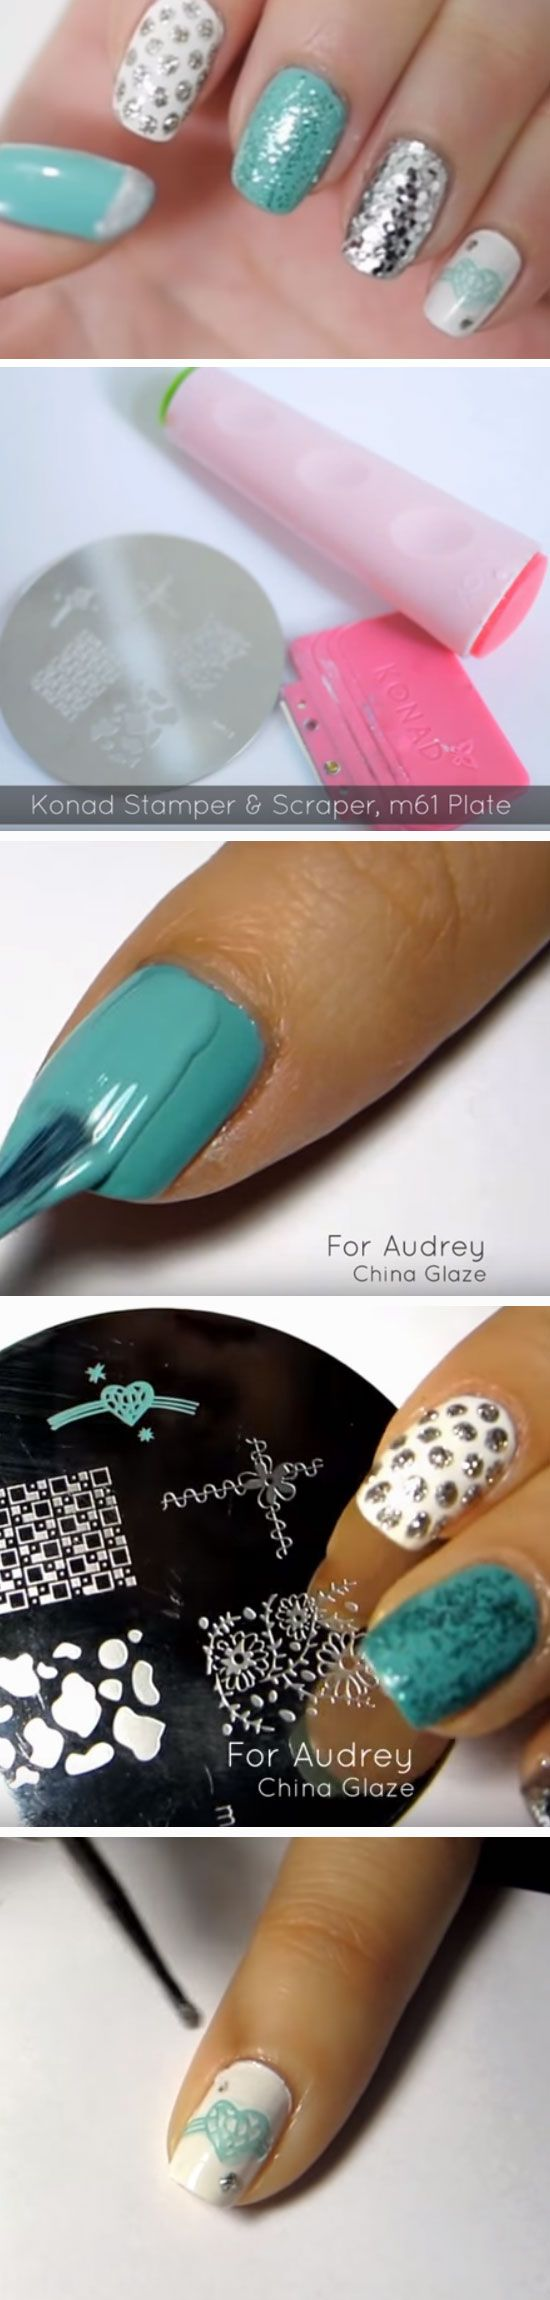 Tiffany Blue & Silver   Prom Nail Art Designs with Glitter